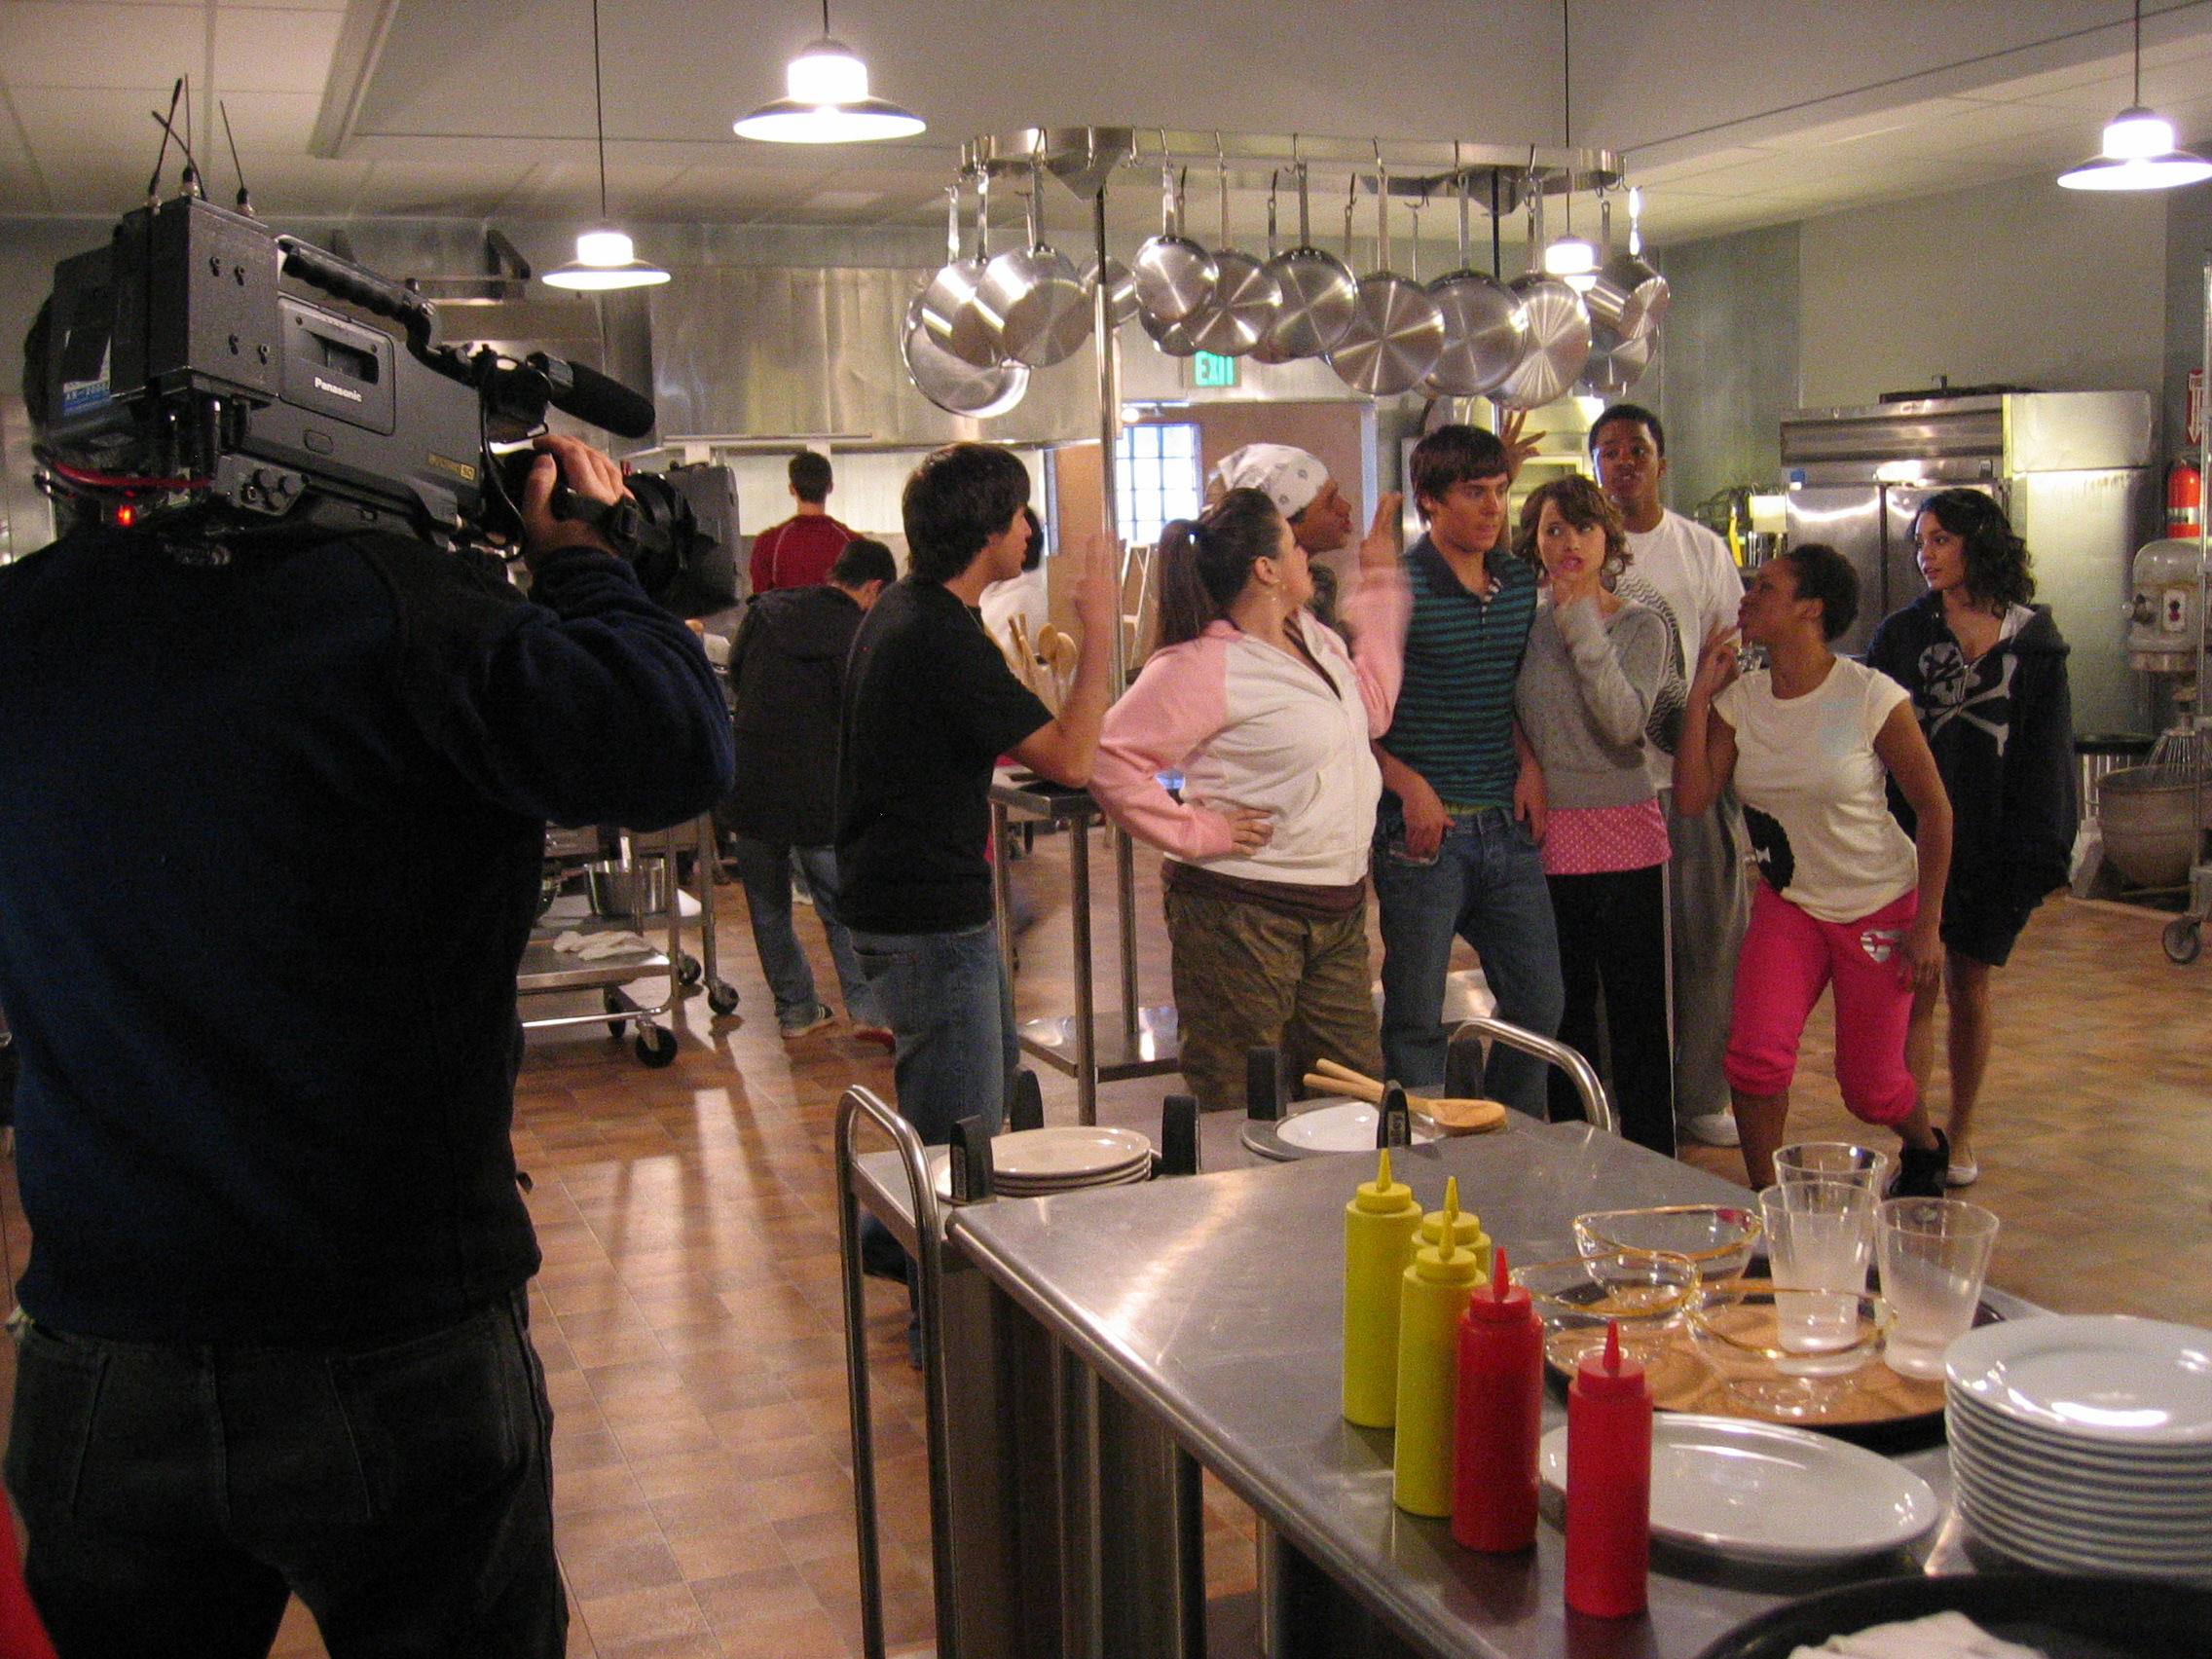 On the set of High School Musical 2 Behind the Scenes.